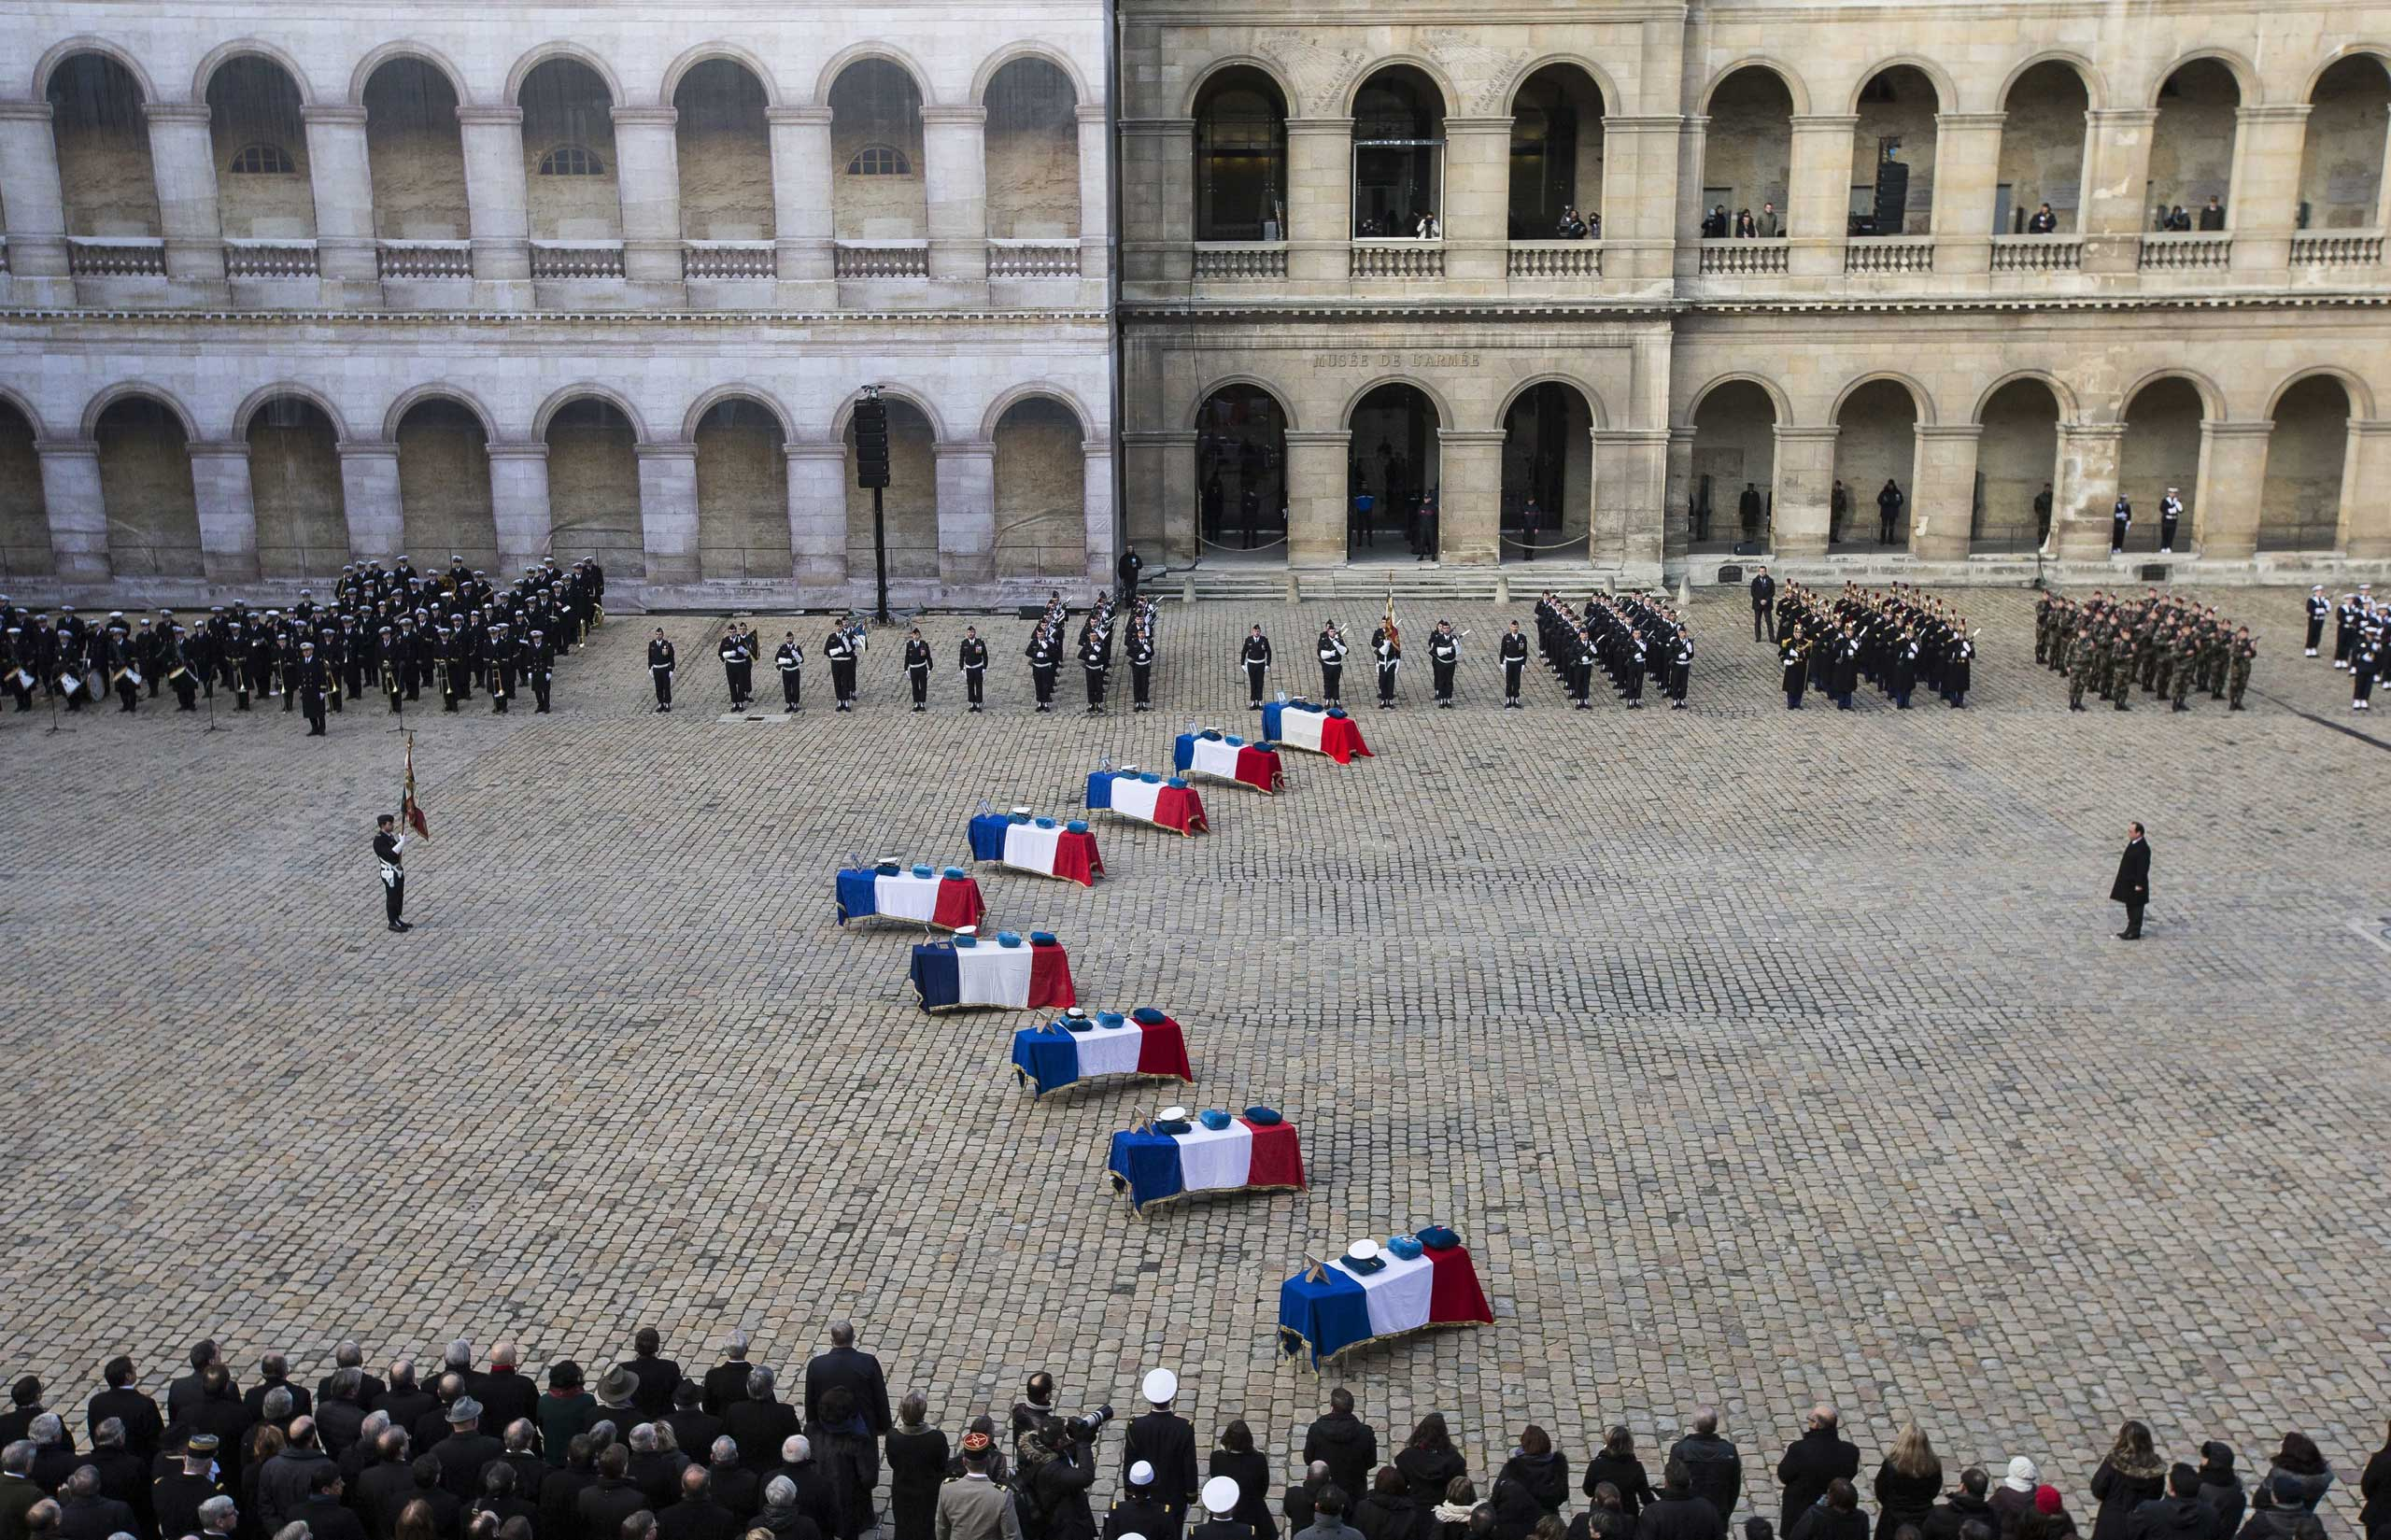 Feb. 3, 2015. French President Francois Hollande (R) stands in front of the coffins of the nine French officers killed in Spain, in the courtyard of the Invalides in Paris. The officers died when a Greek two-seater F16 fighter jet crashed during a NATO training exercise  inside Los Llanos air base, in Albacete, central Spain. The death toll has risen to 11 and 20 soldiers were also injured.